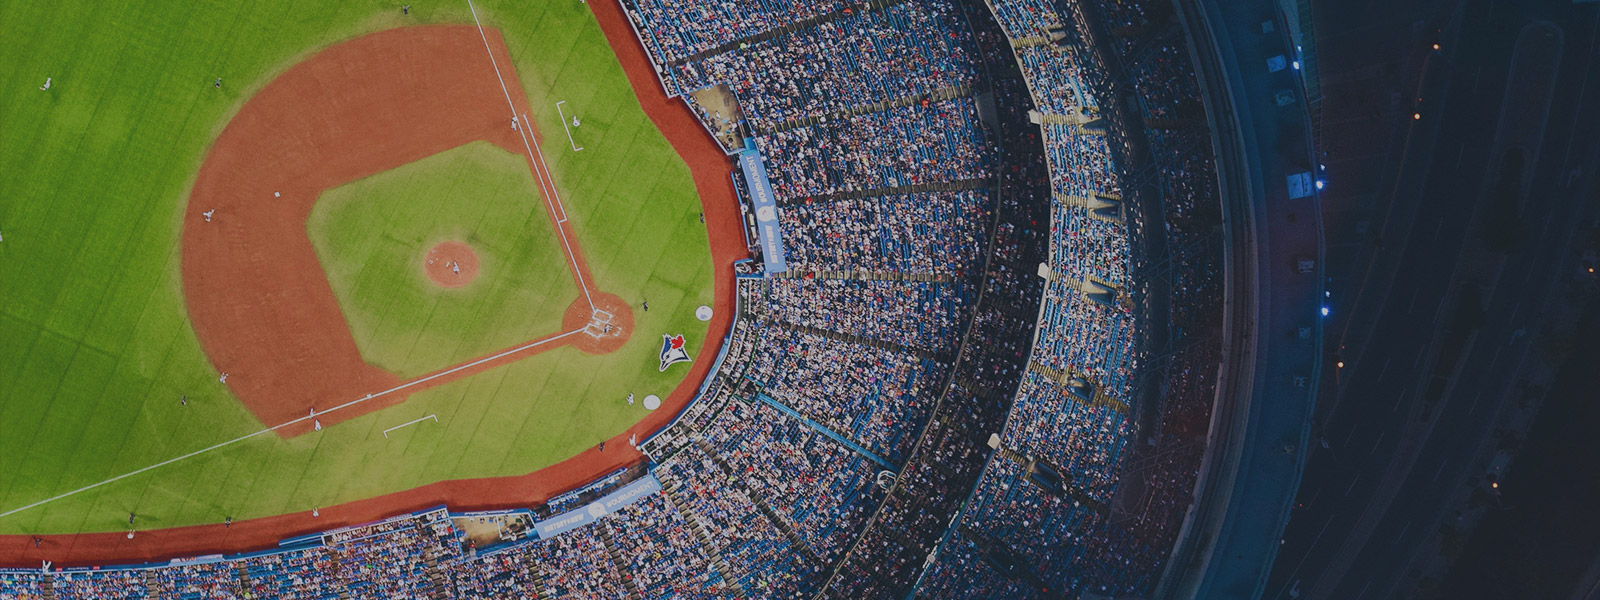 Moneyball: The Analysis of a Real Estate Agent Background Image